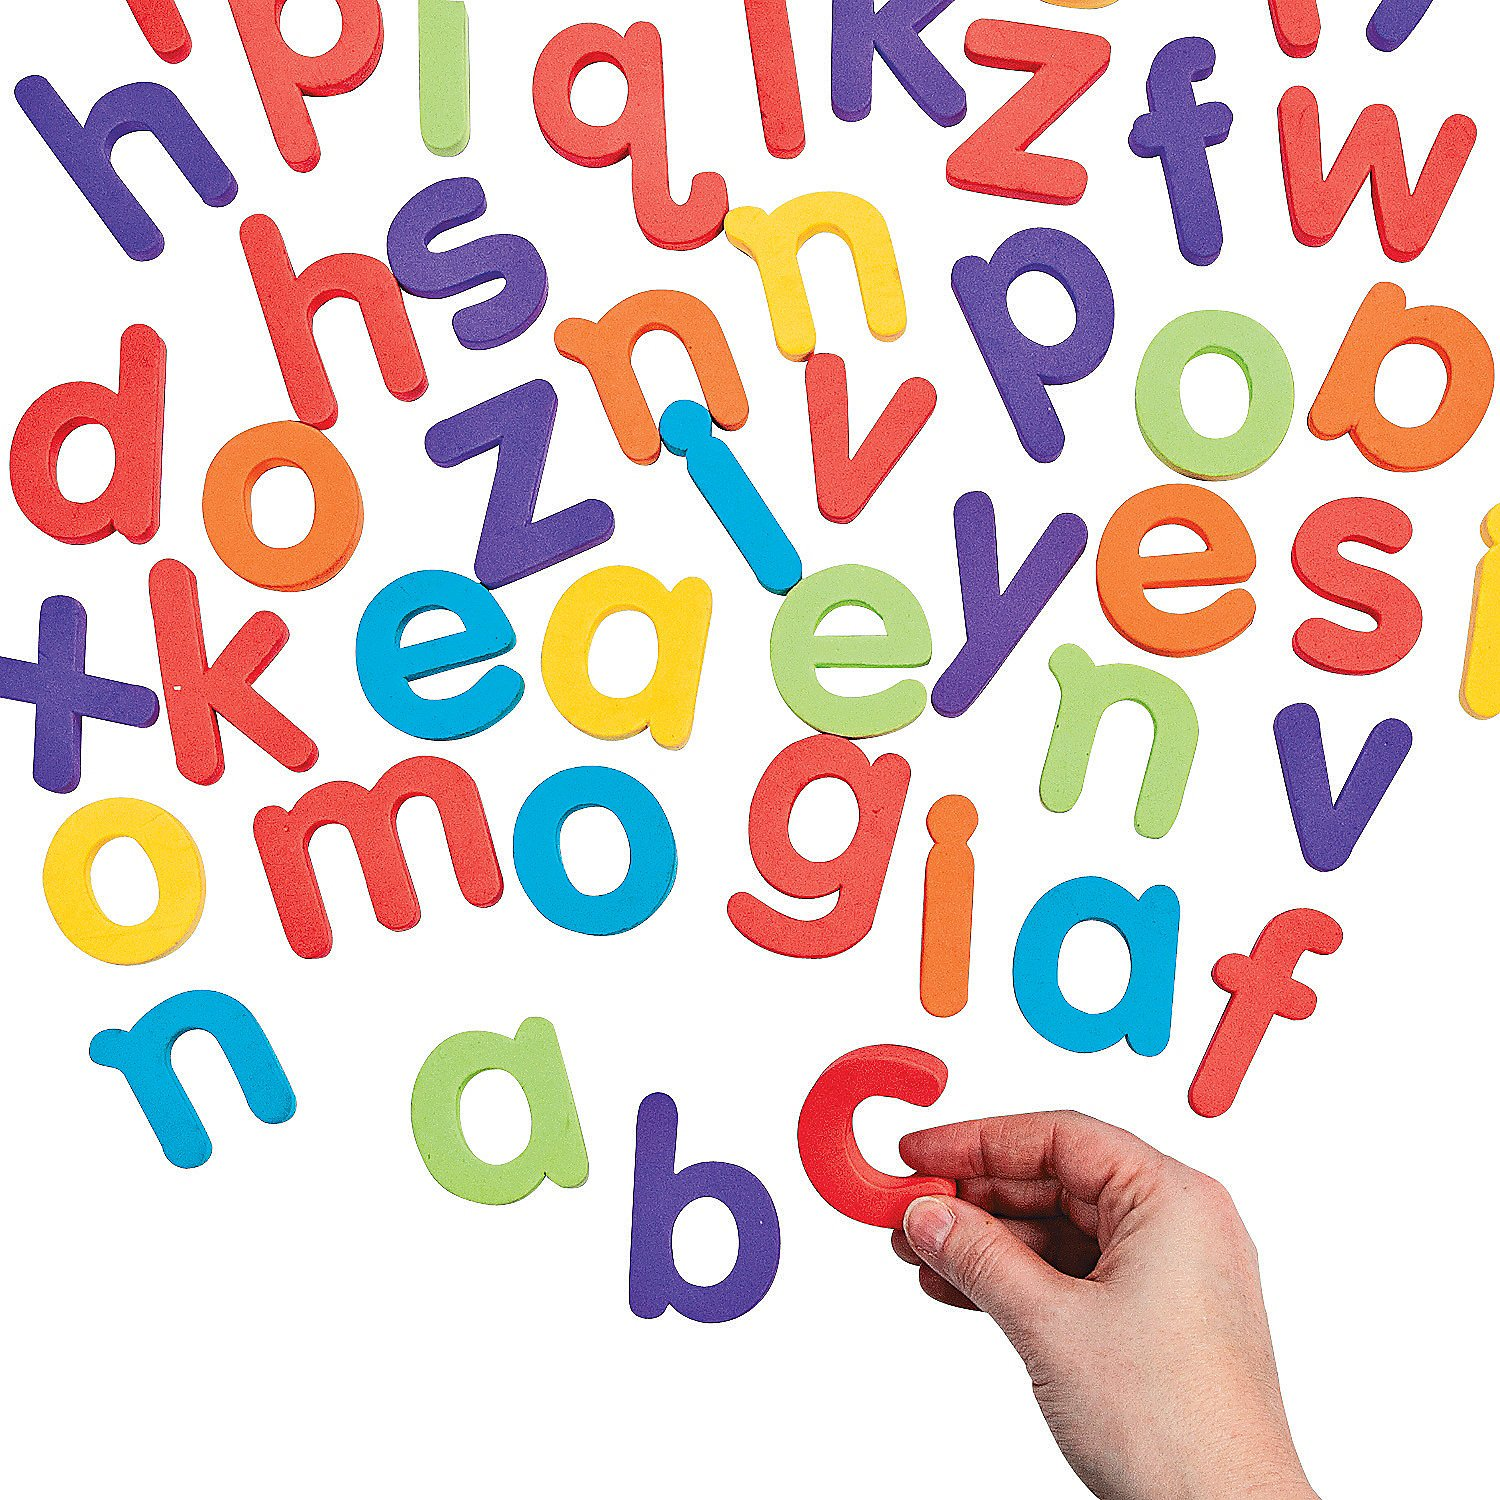 Fun Express - Solid Foam Letters - Lower Case - Educational - Teaching Aids - Language Arts - 62 Pieces by Fun Express